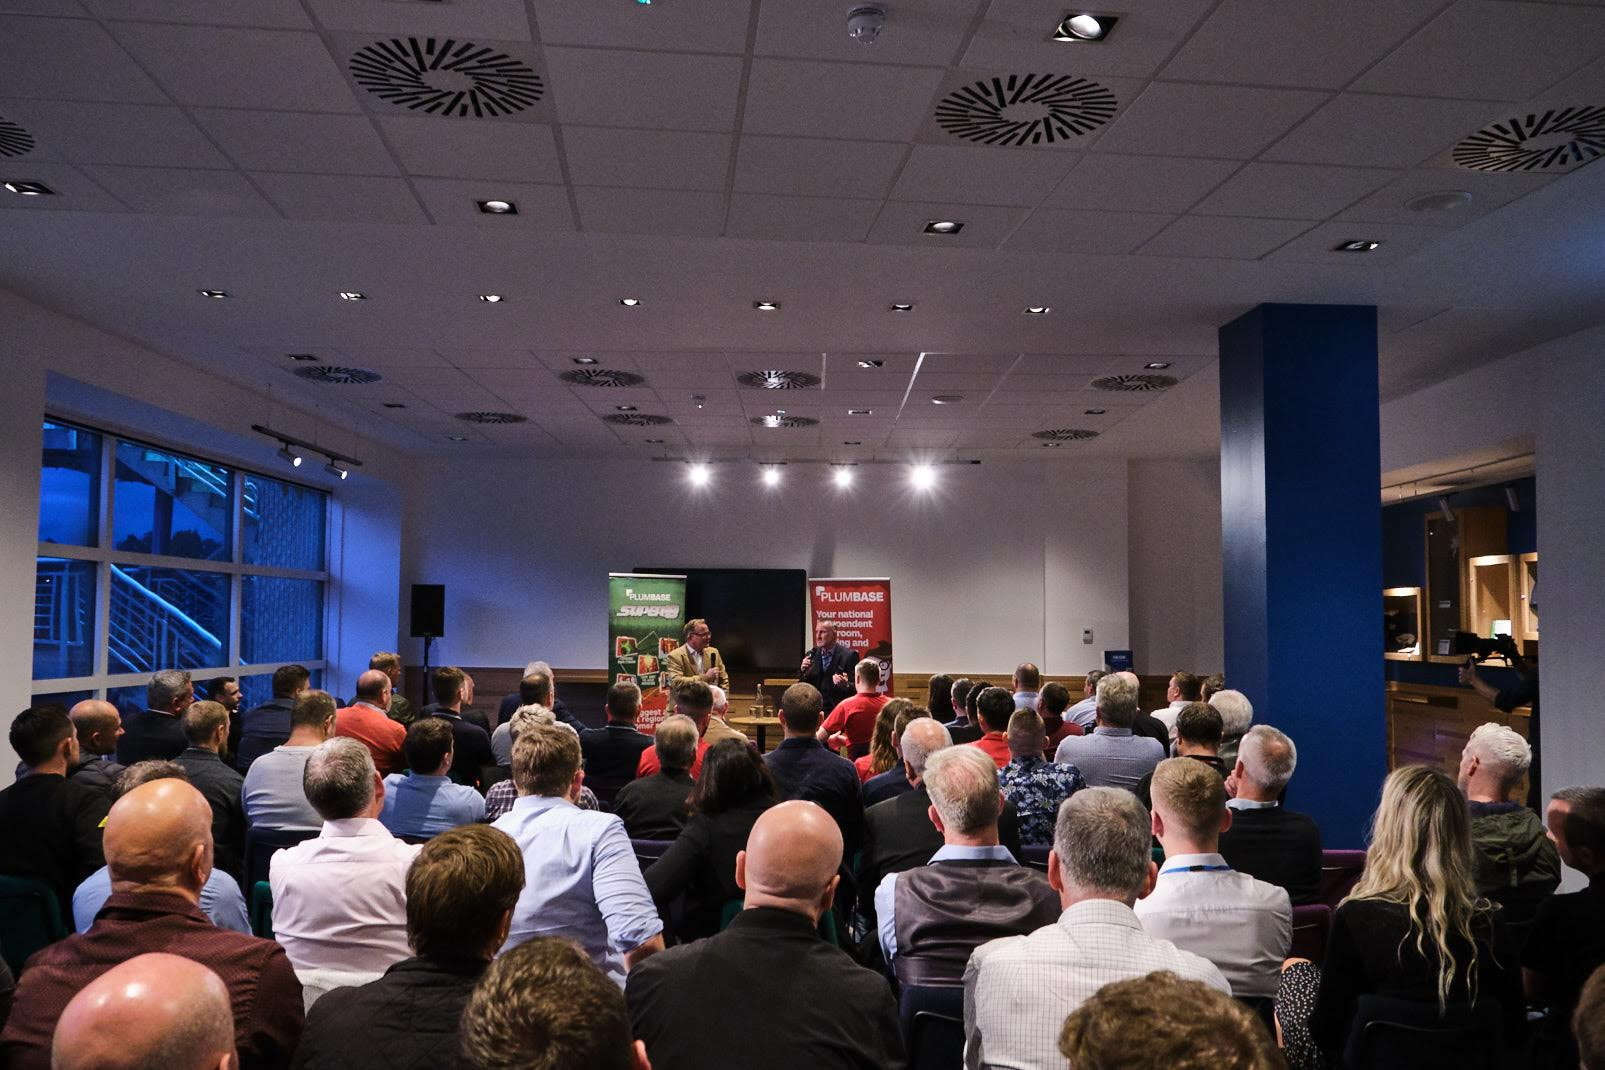 Conferences at BT Murrayfield Stadium